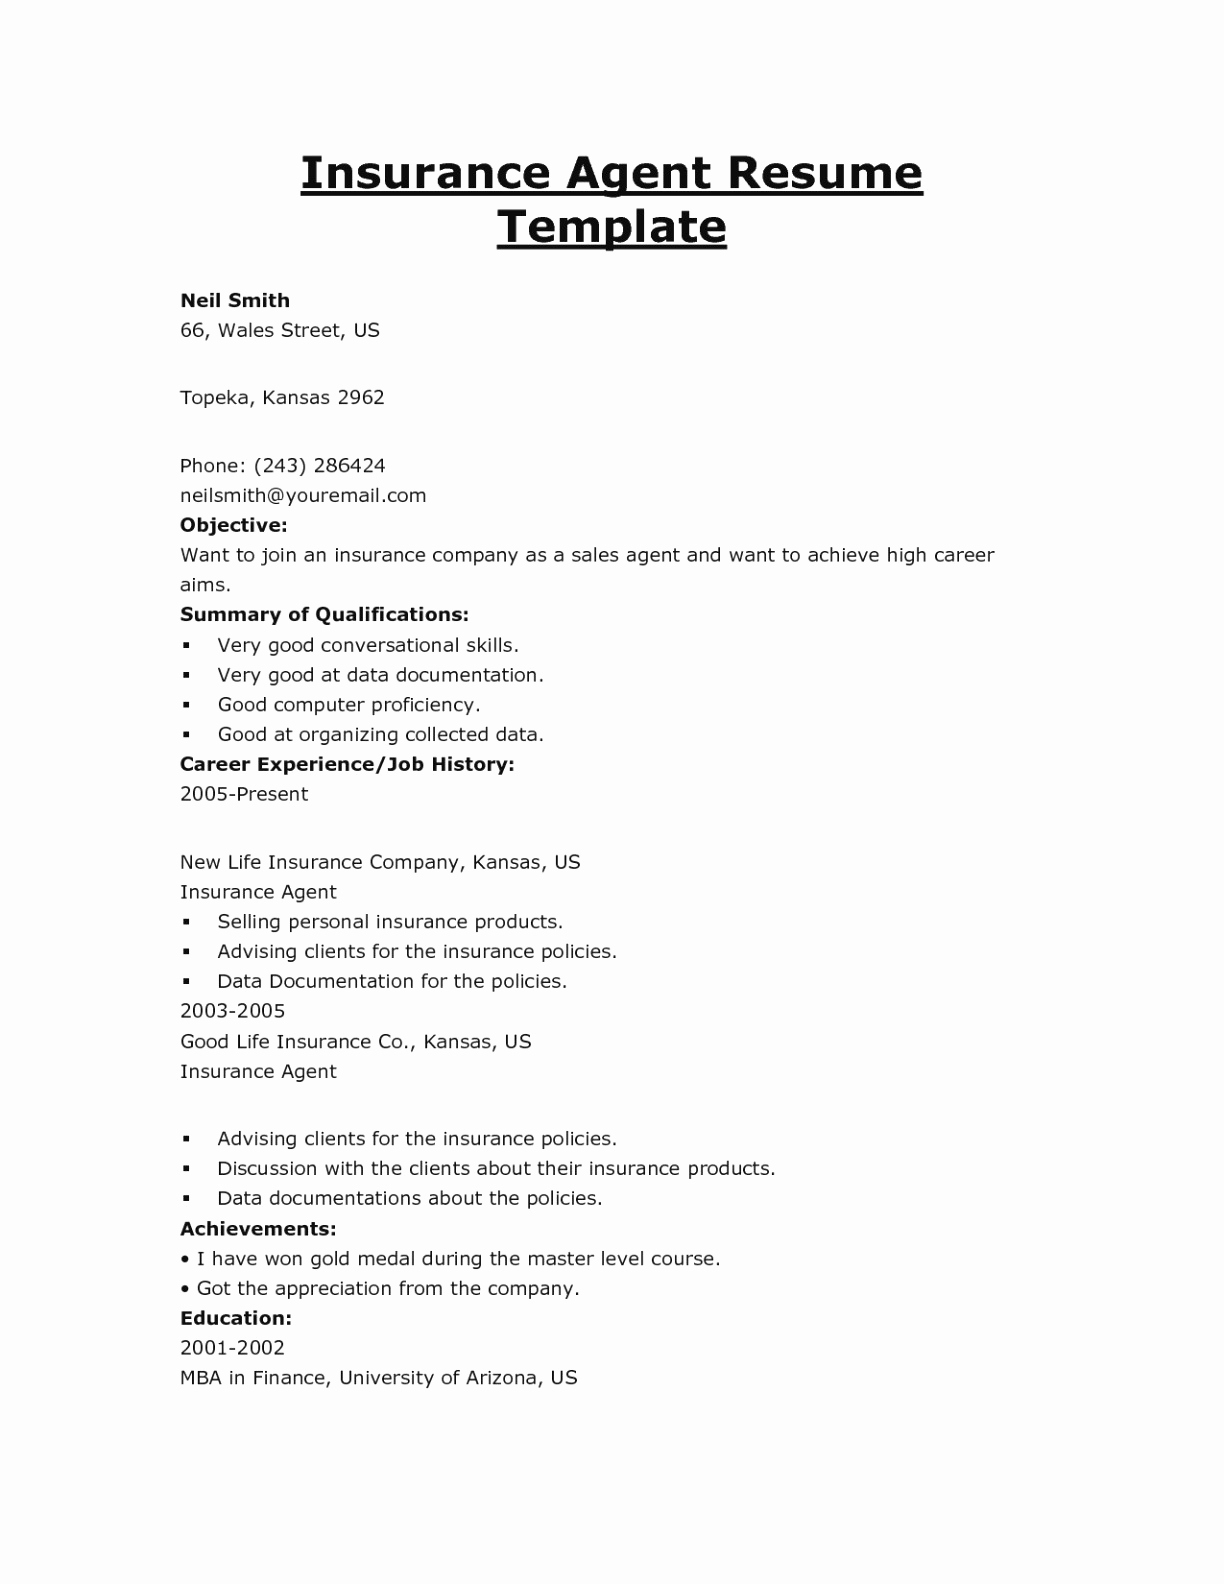 sales agent resume example-Insurance Sales Agent Resume Beautiful Sales Representative Resume 18-l